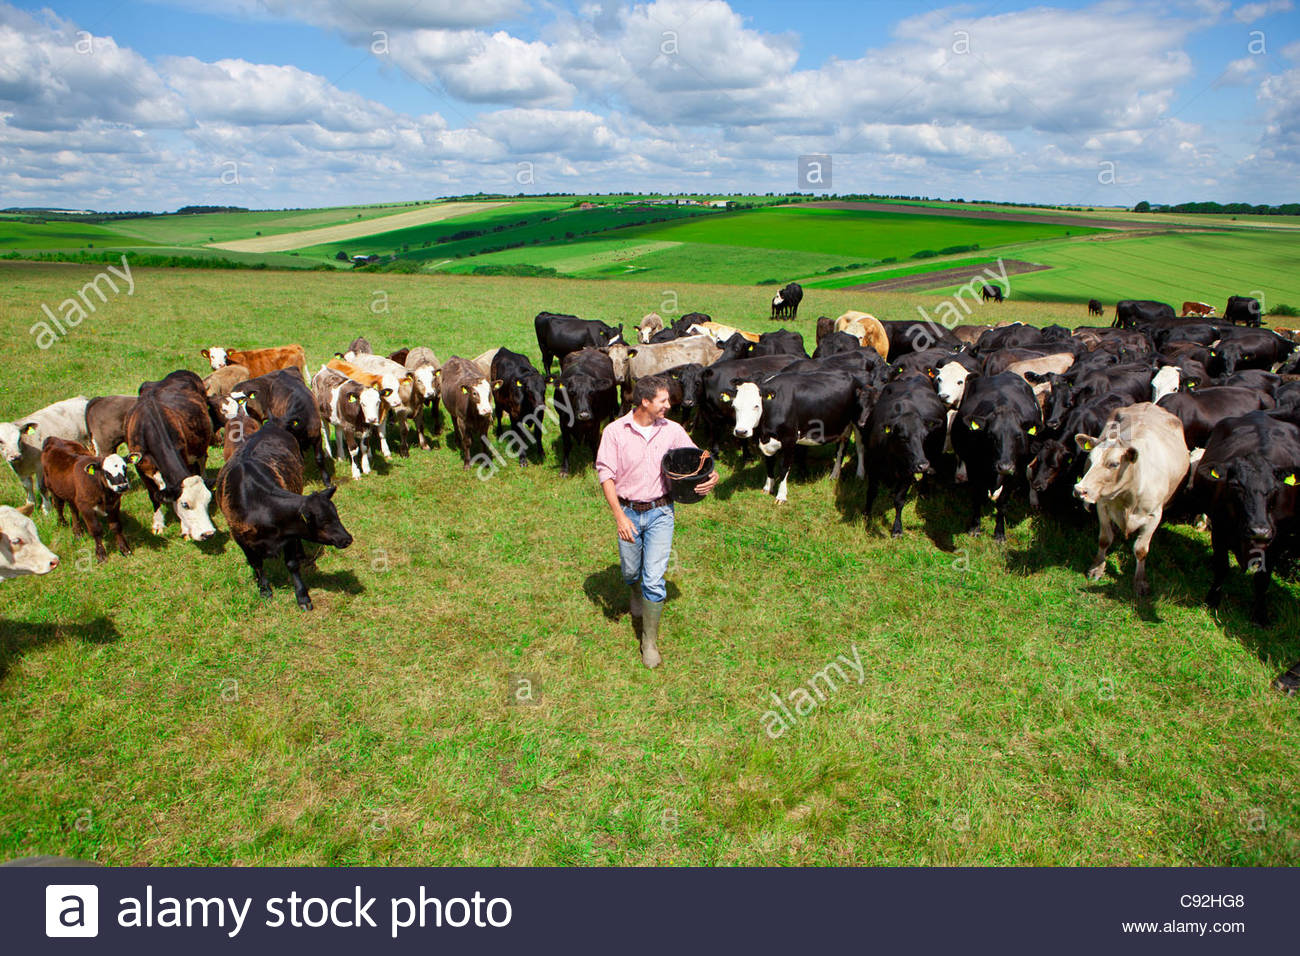 Farmer with bucket among cattle herd in sunny rural field - Stock Image